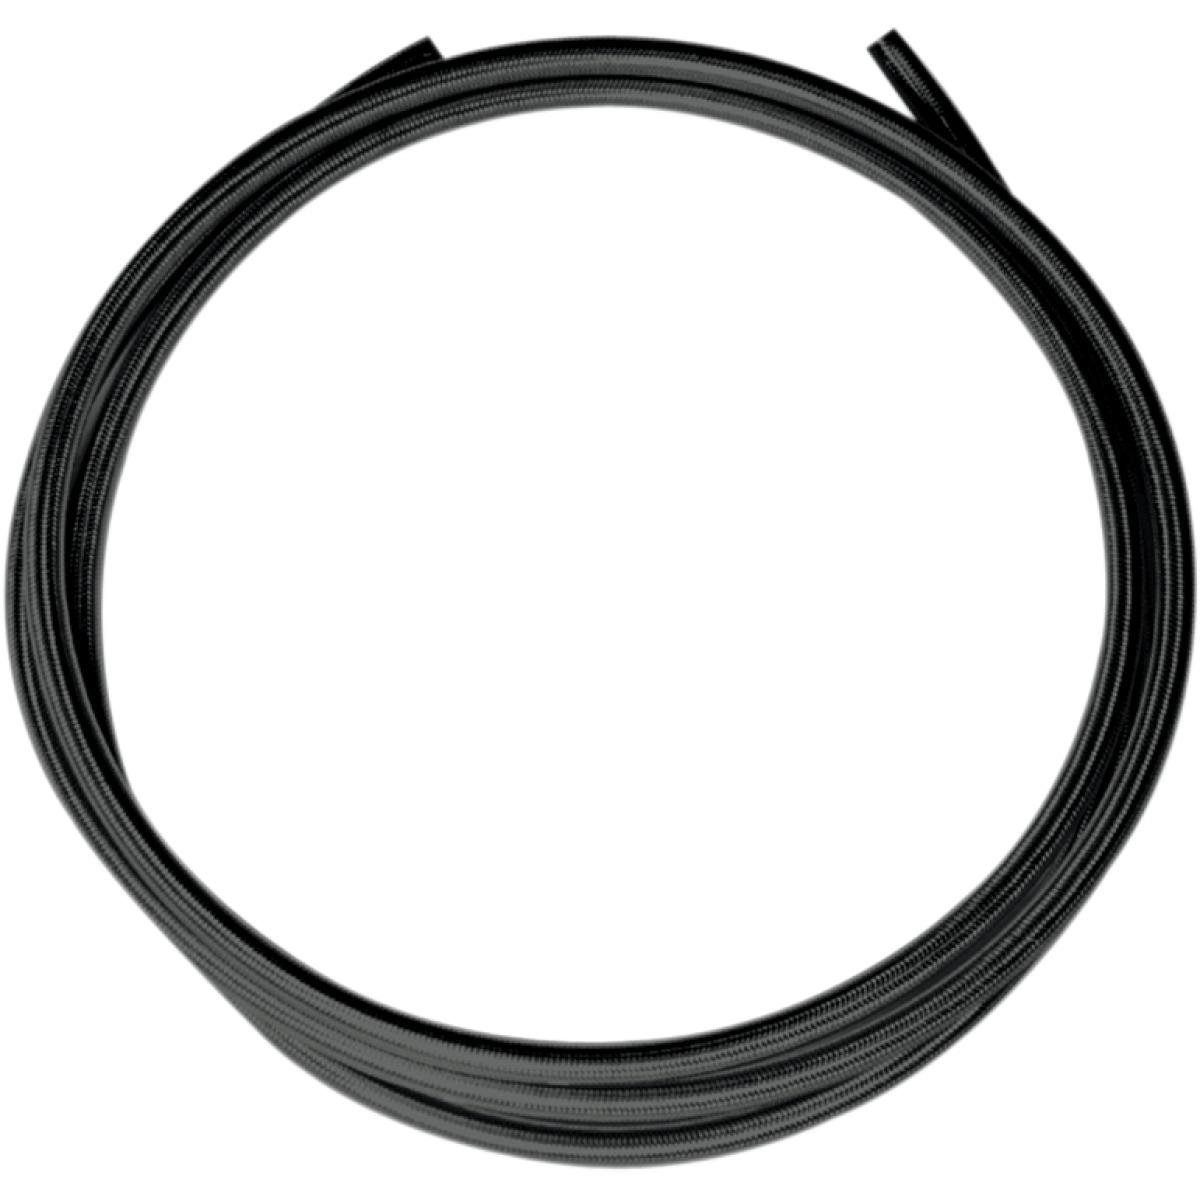 Magnum Build Your Own Brake Line - 6ft. Coated (-3) Brake Line with Vice Wrench - Black 495006A